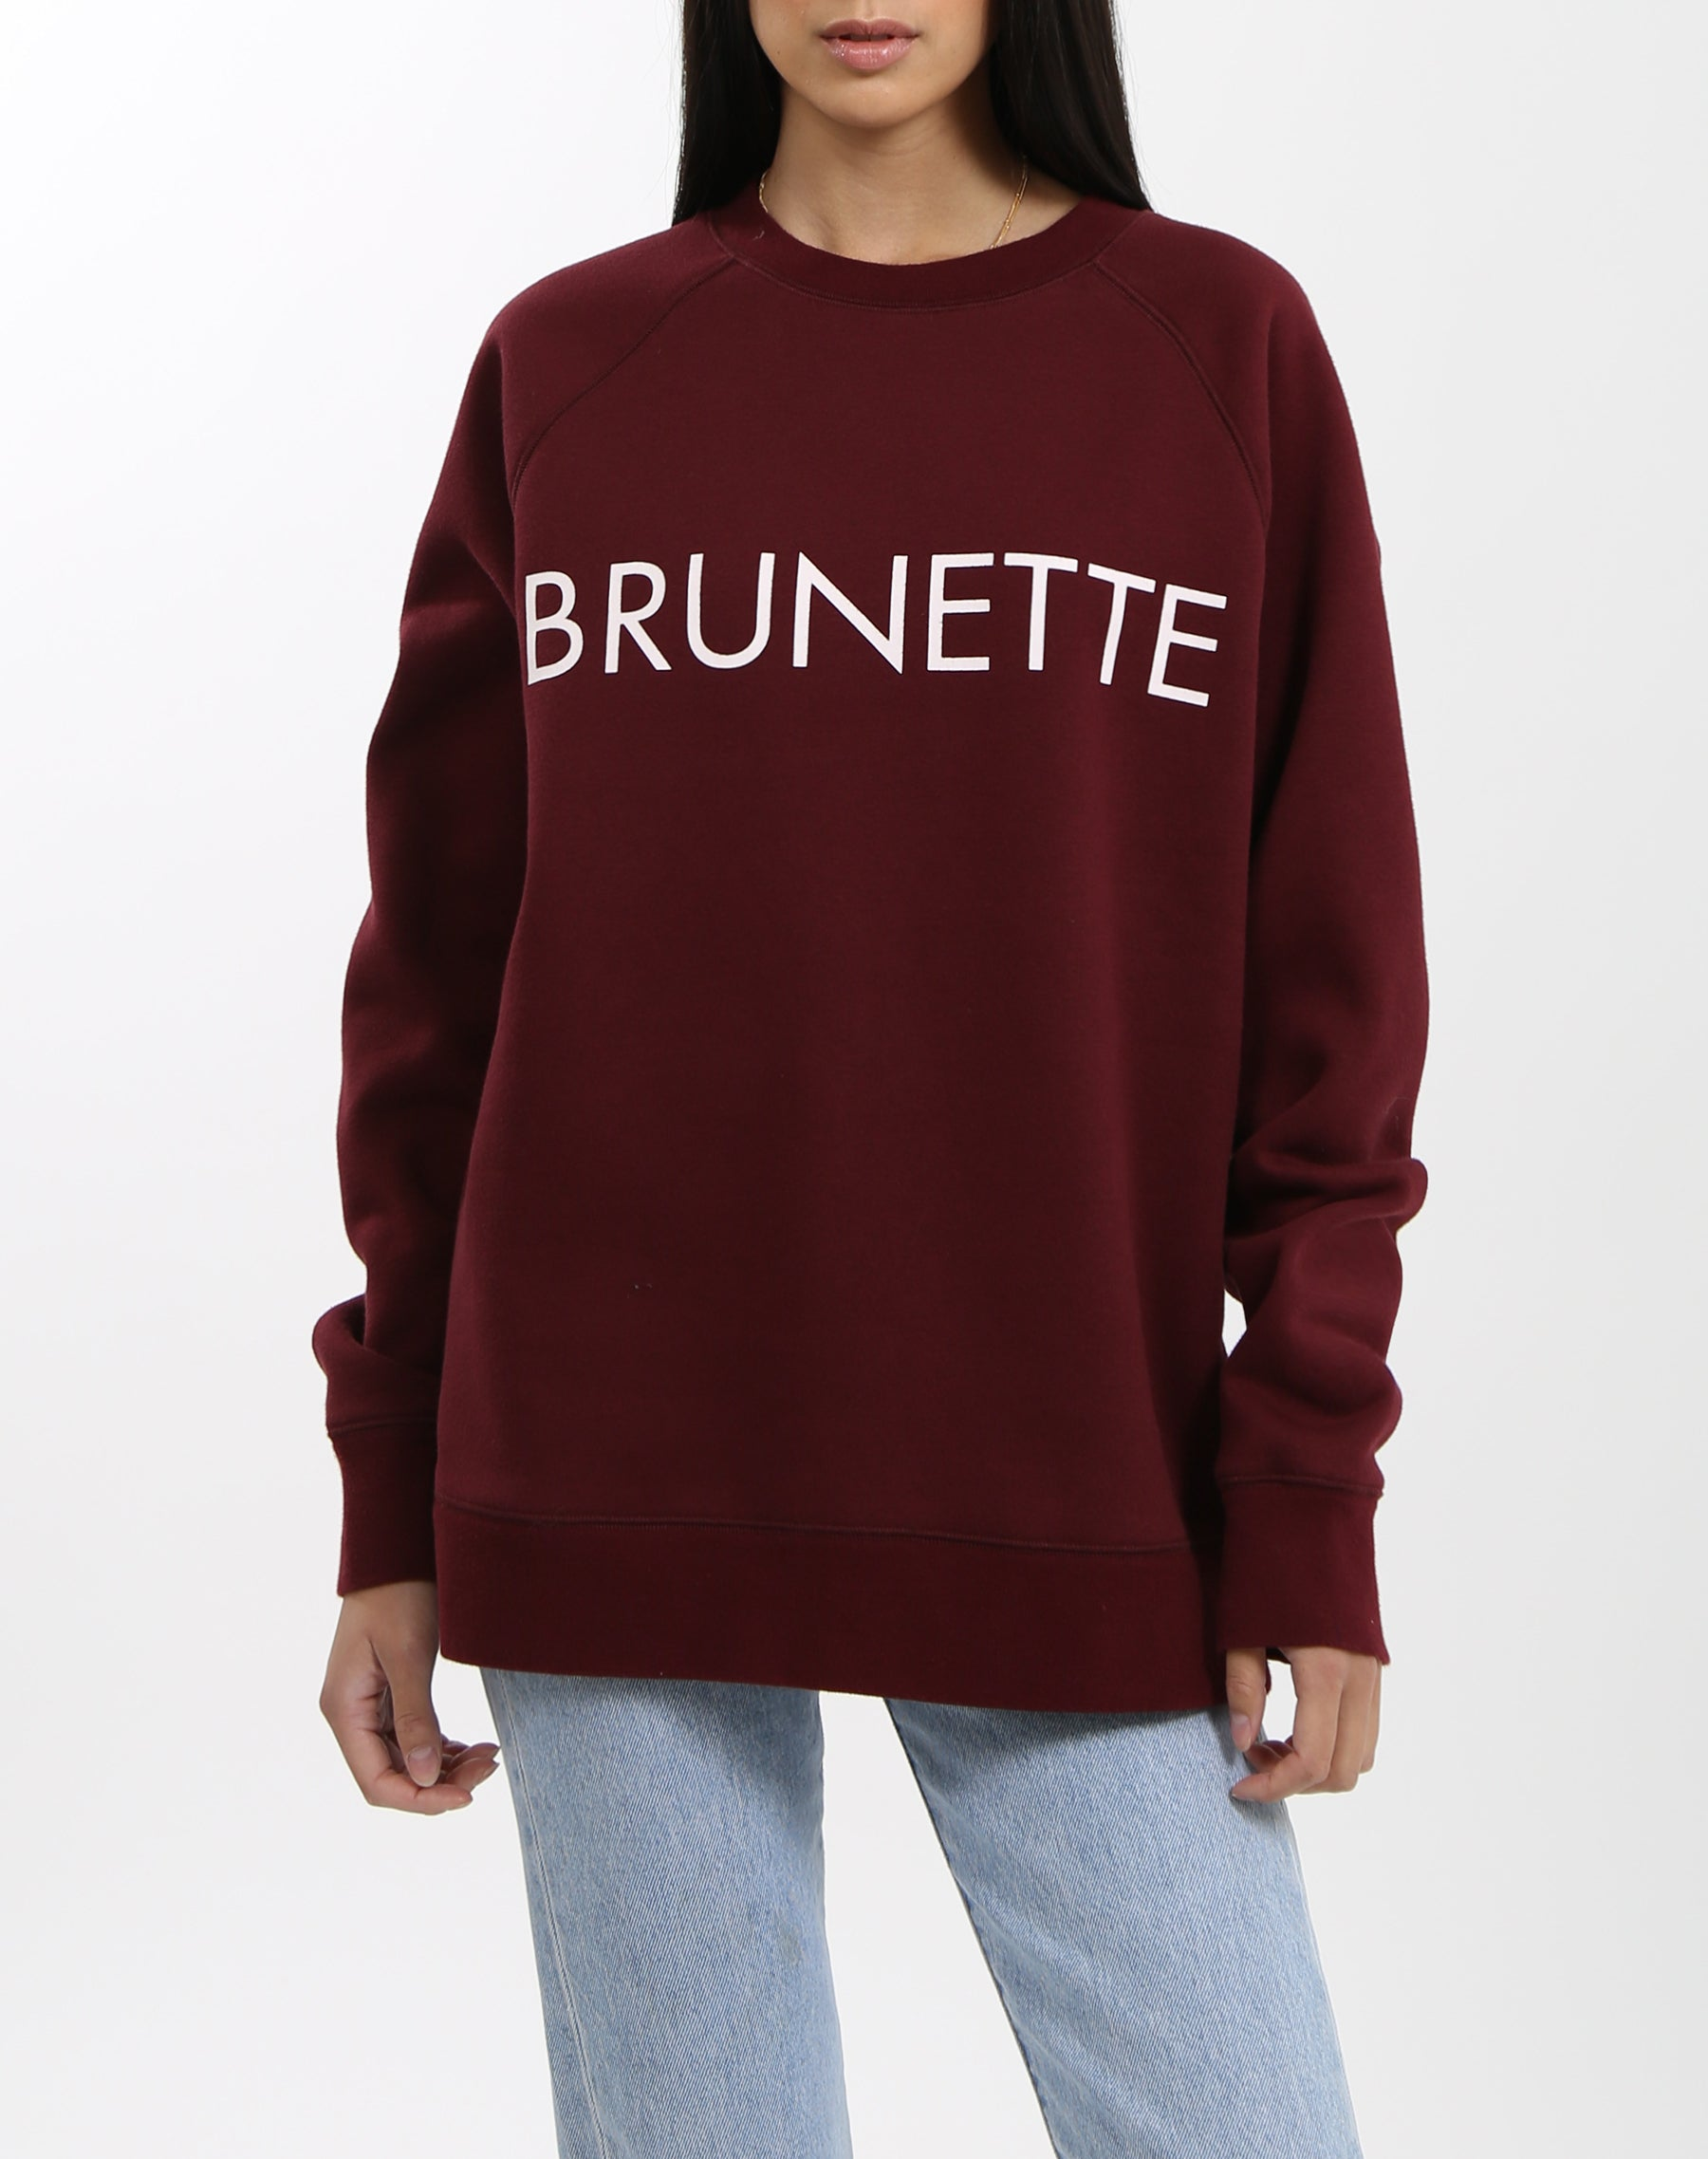 Photo of the Brunette classic crew neck sweatshirt in burgundy by Brunette the Label.